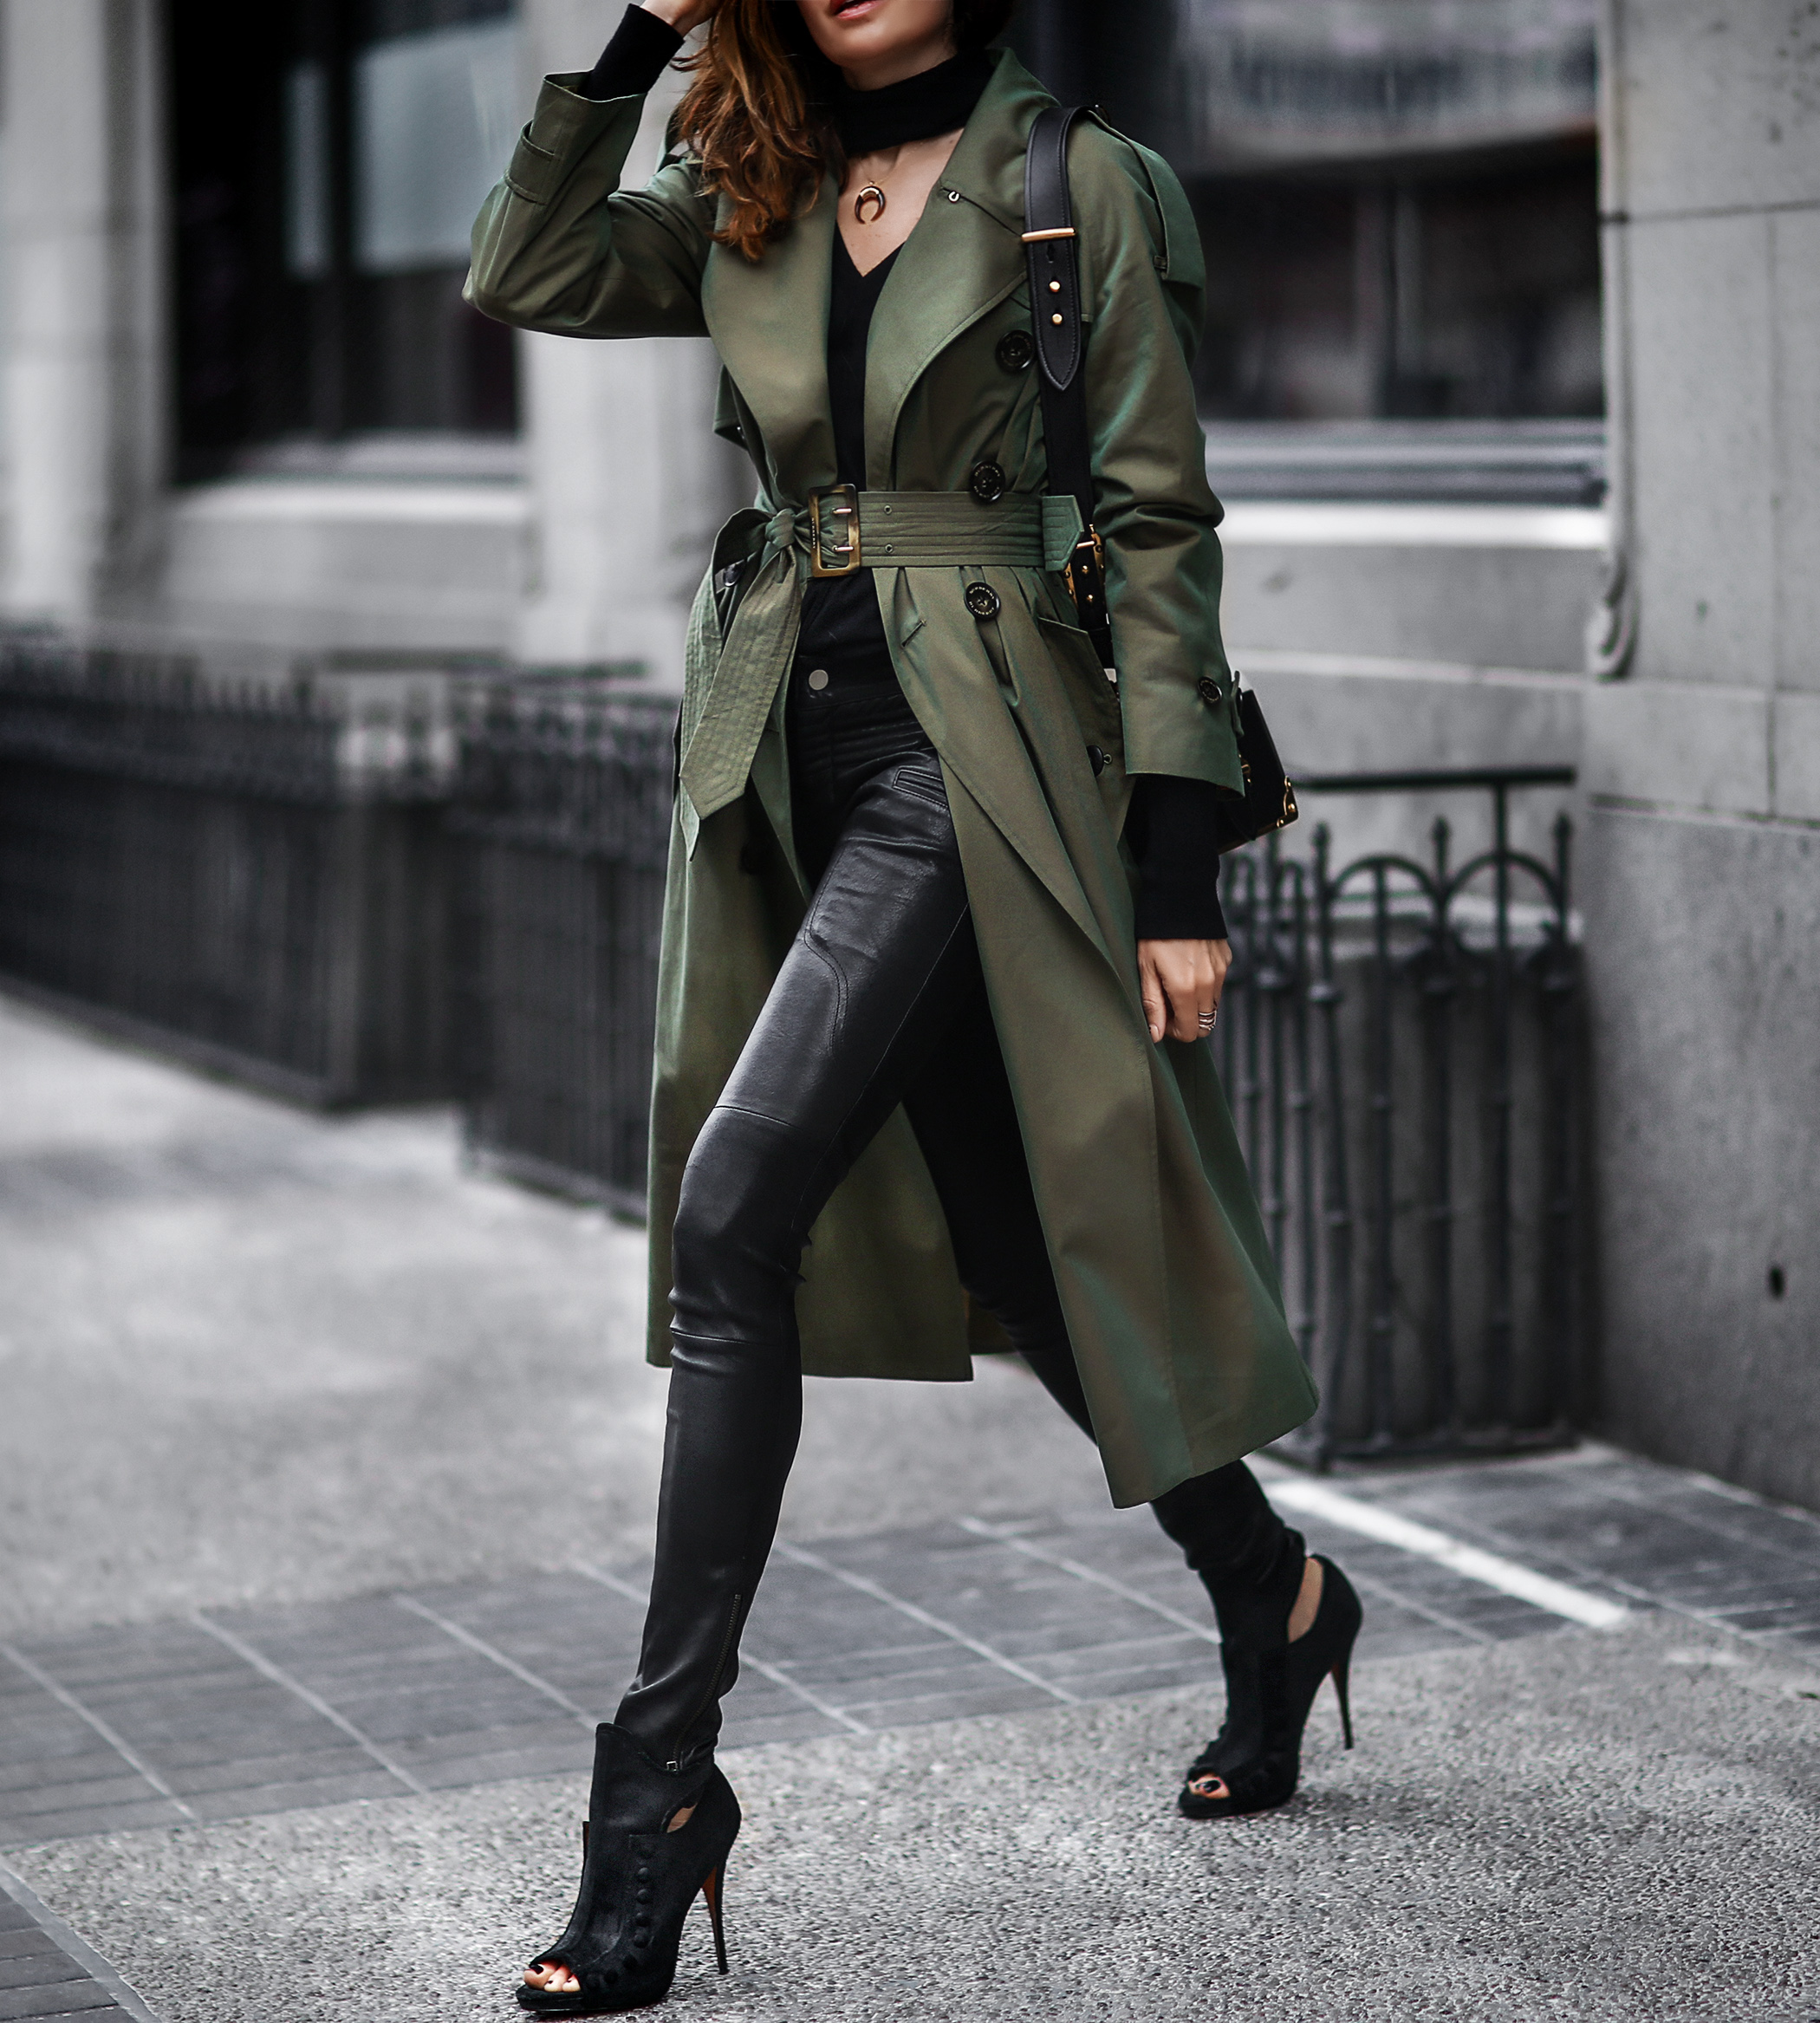 burberry trench coat, black leather pants